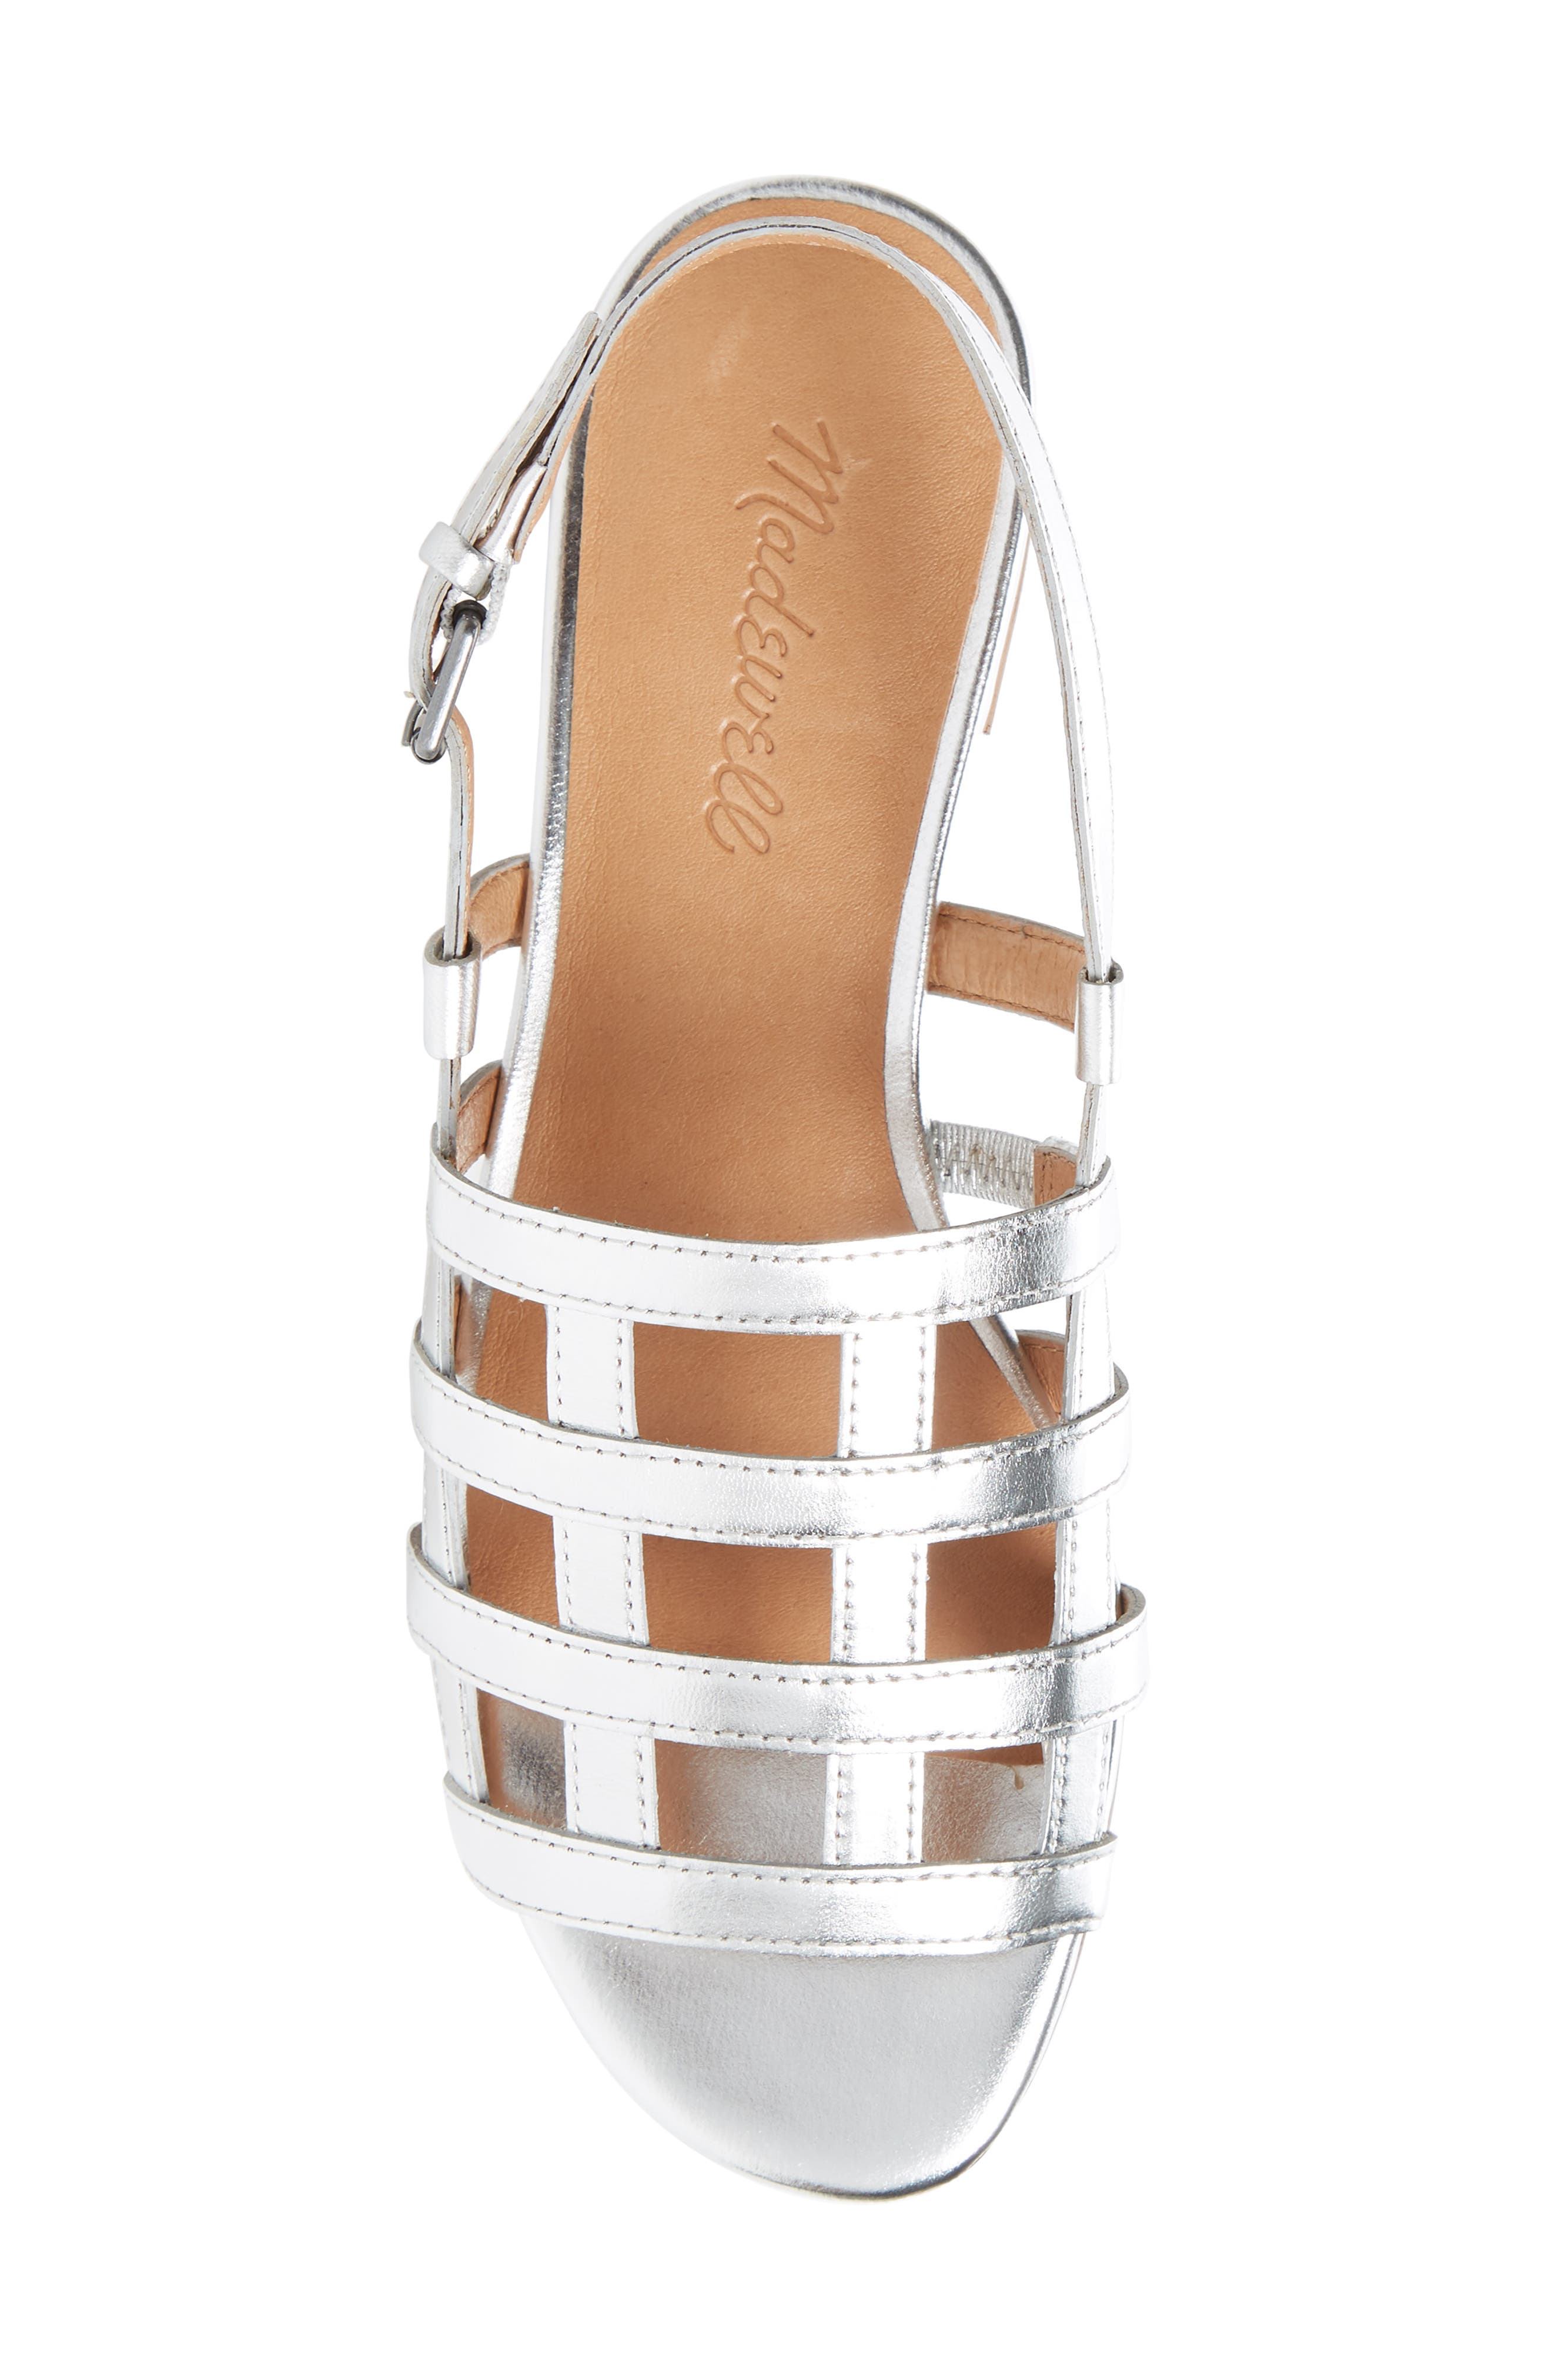 Rowan Cage Sandal,                             Alternate thumbnail 5, color,                             040